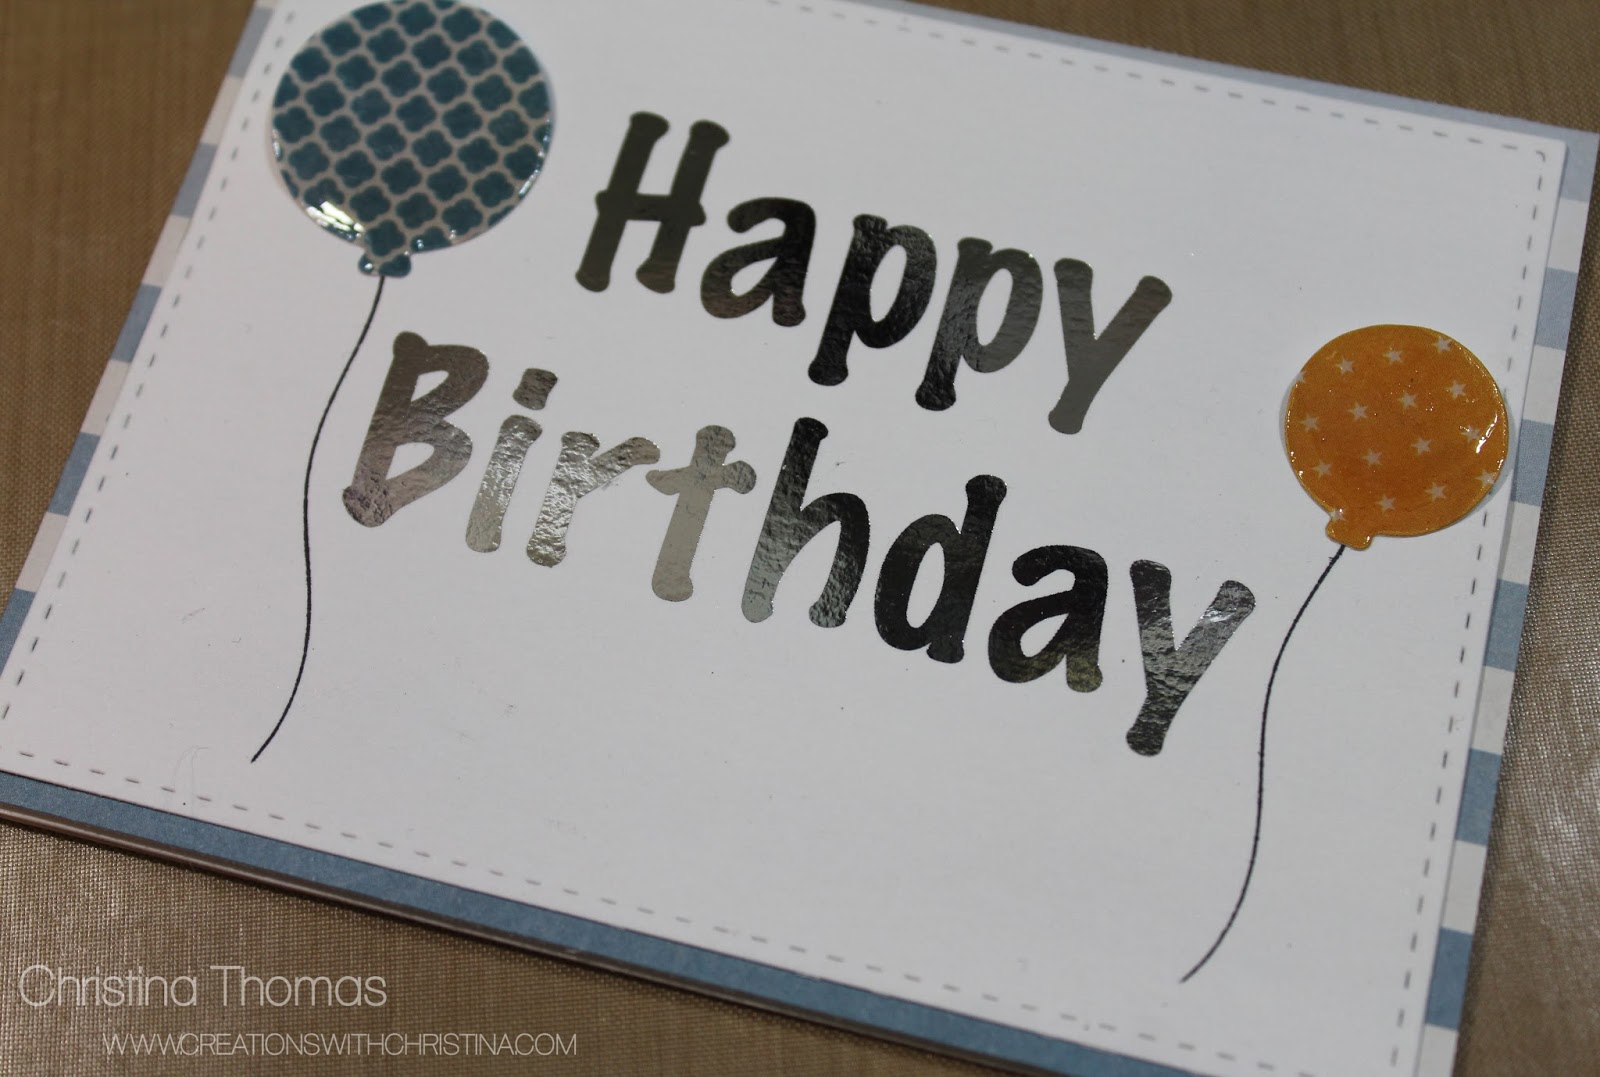 Foiled Birthday Card - Creations with